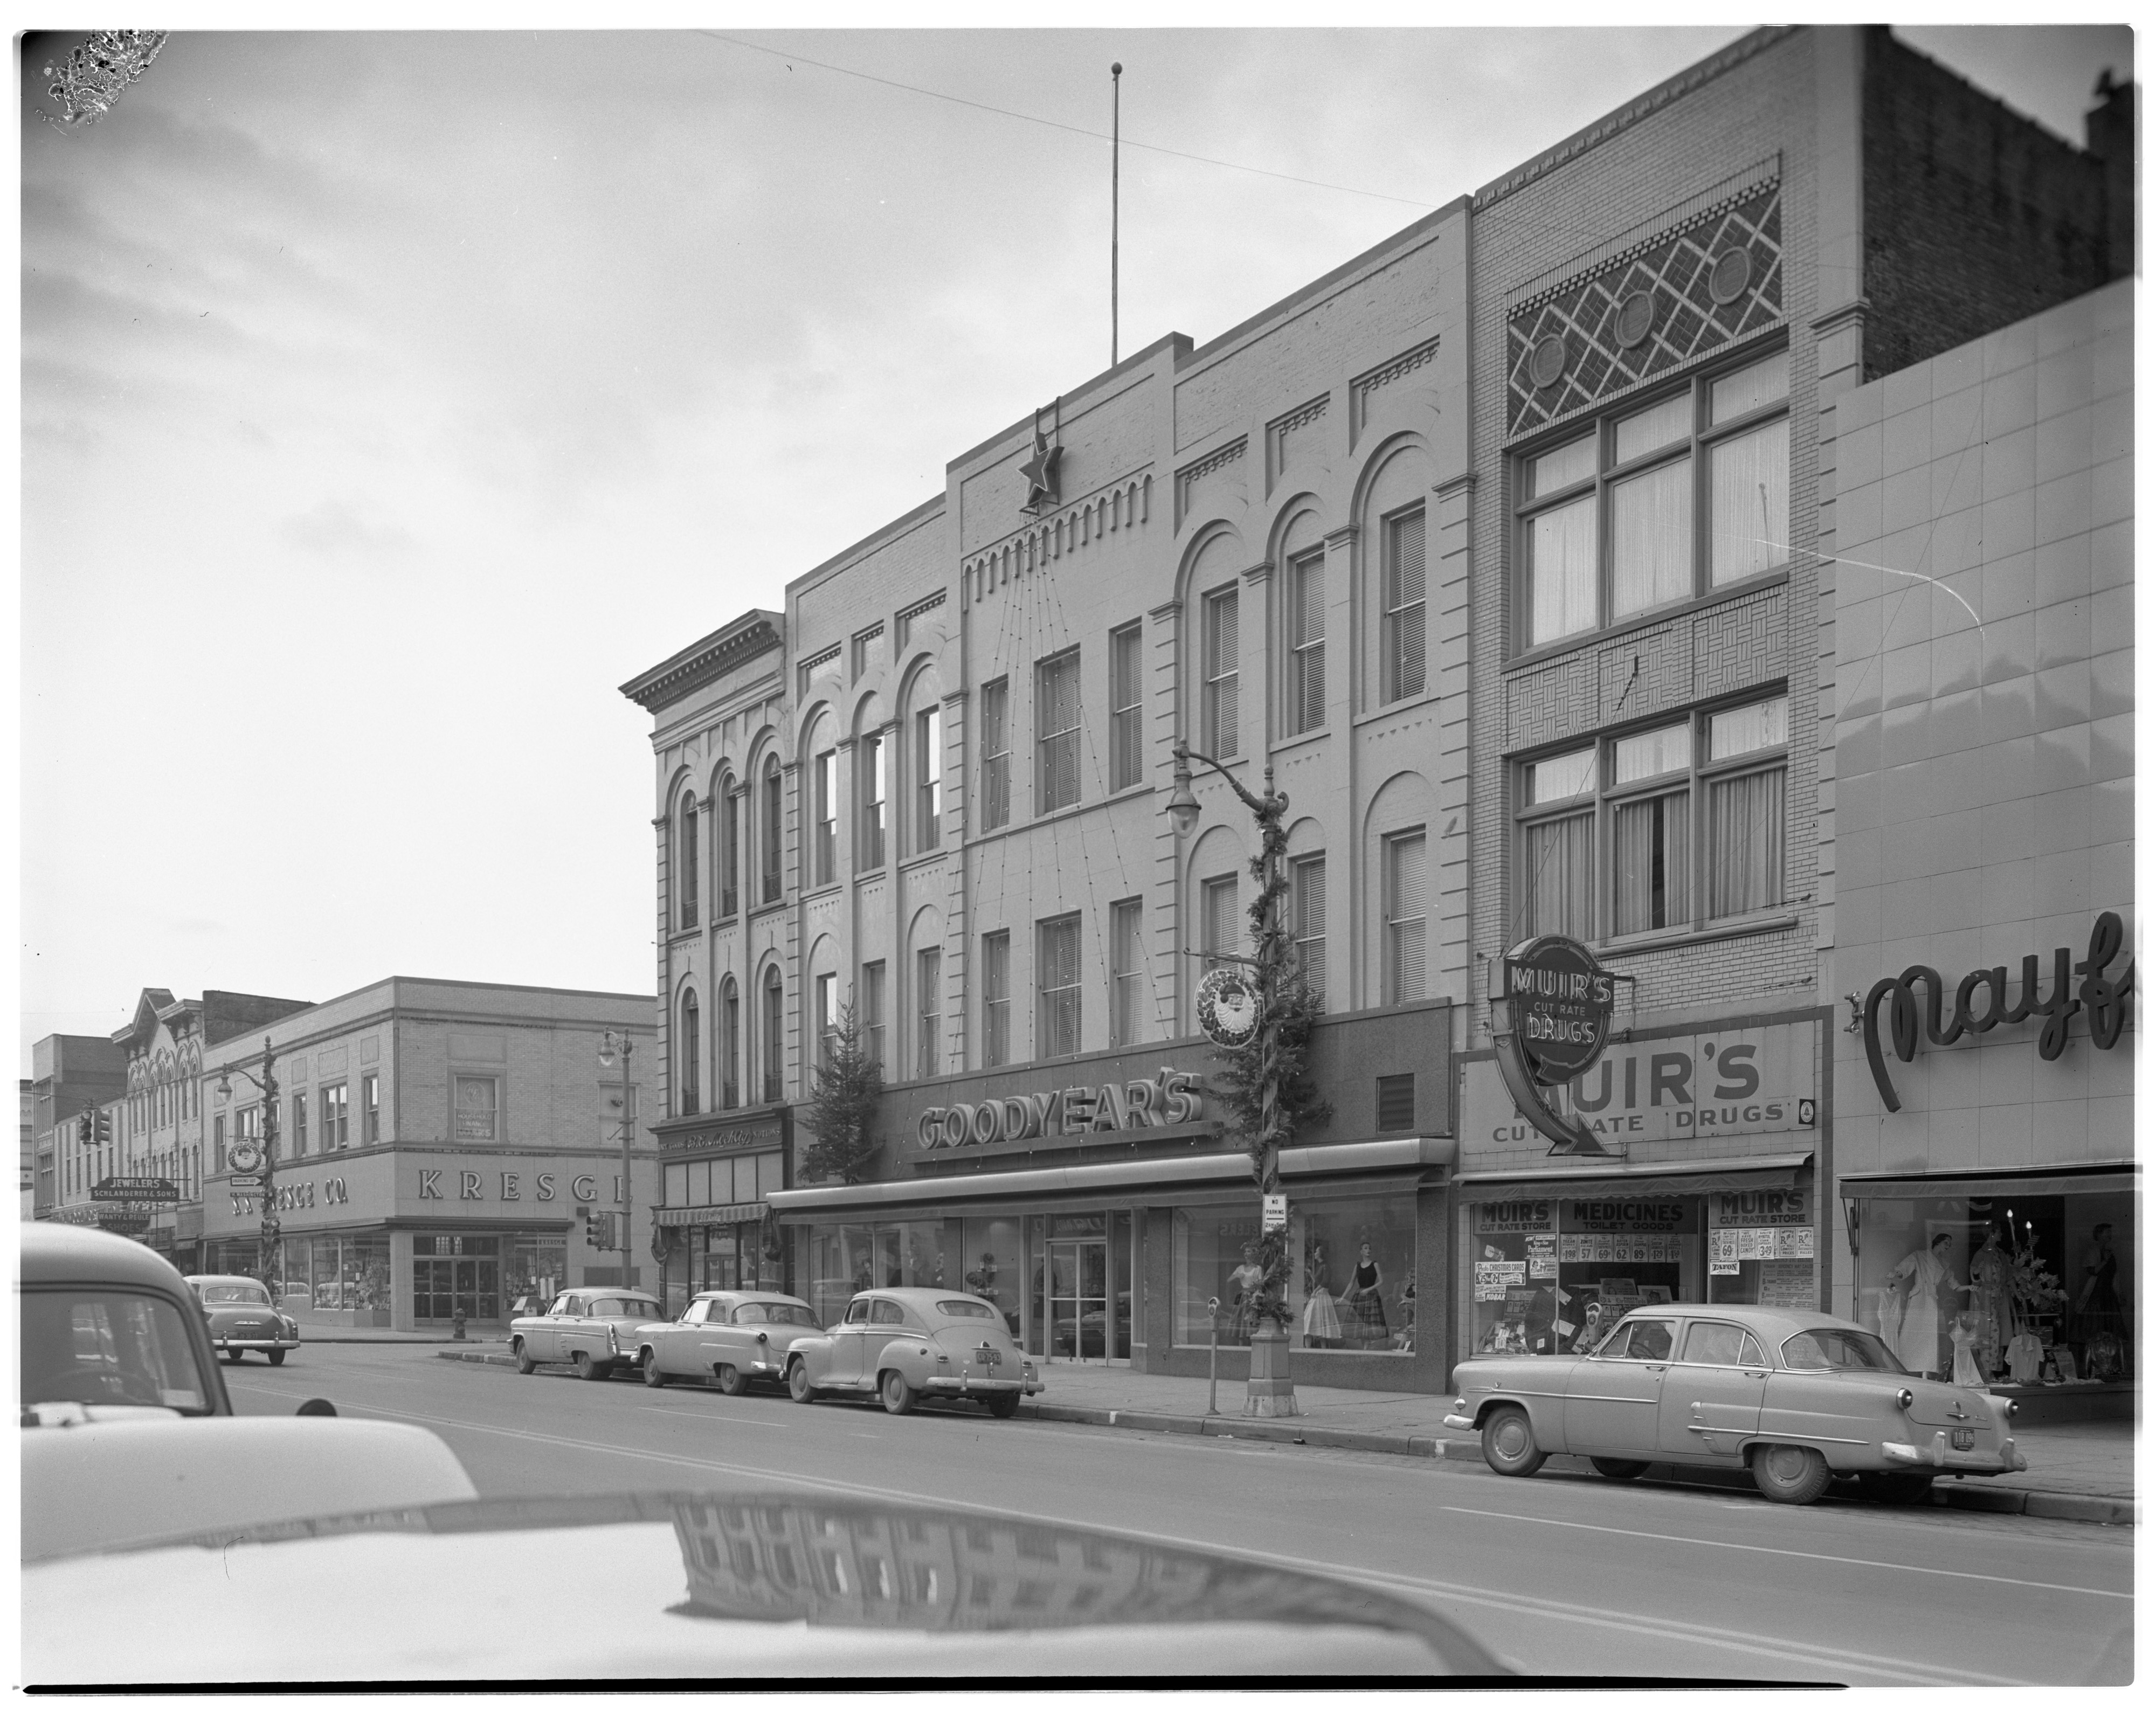 Goodyear's Department Store image